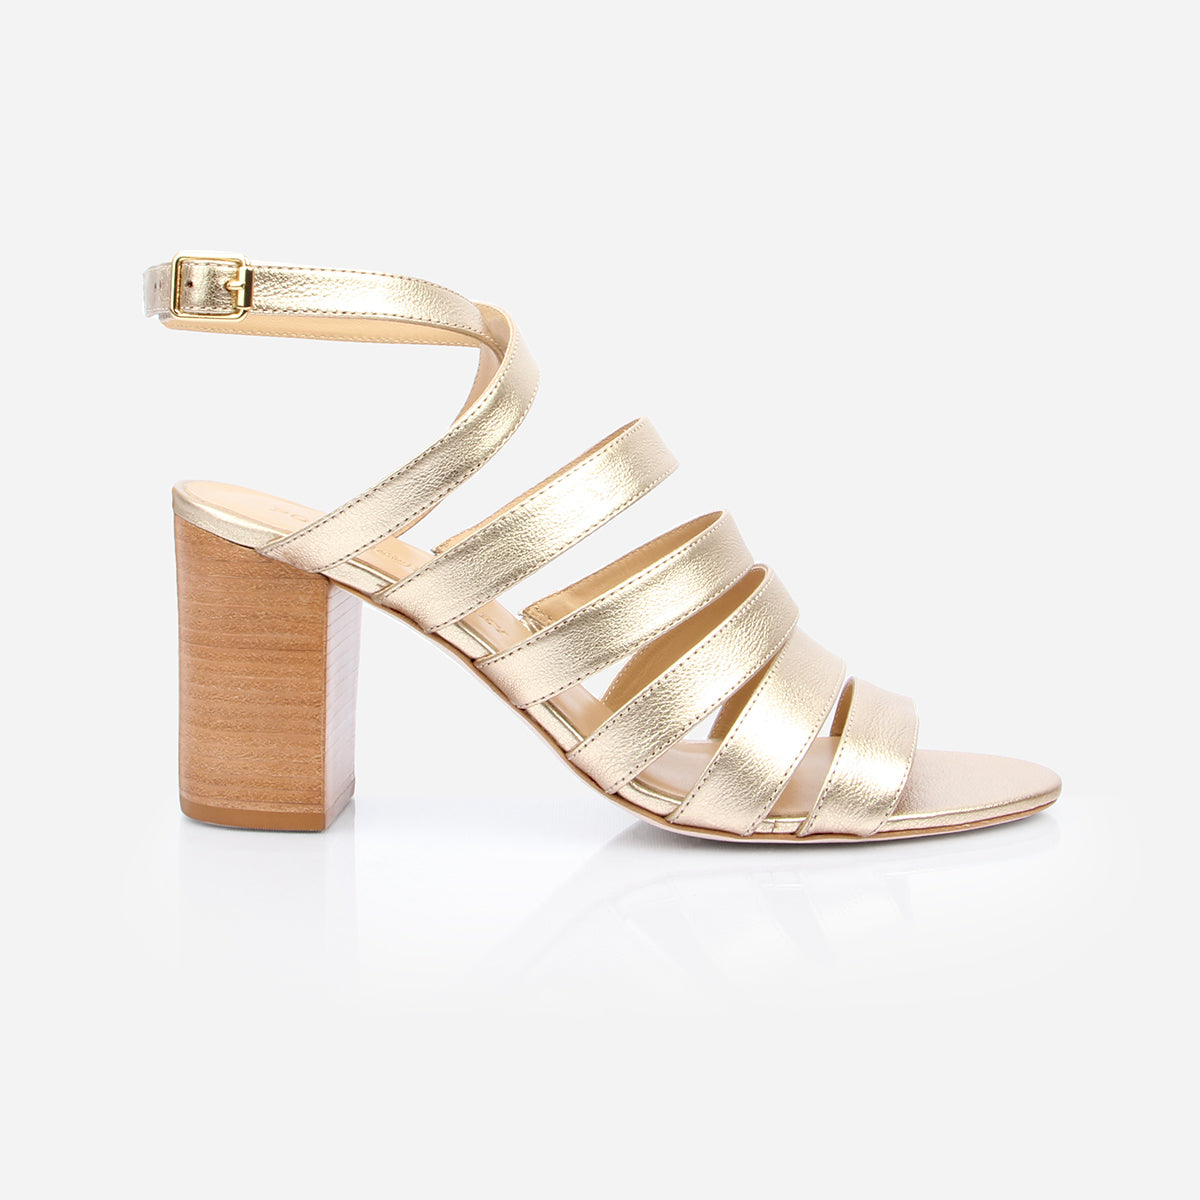 The Victoria Heeled Sandal in Champagne - Poppy Barley